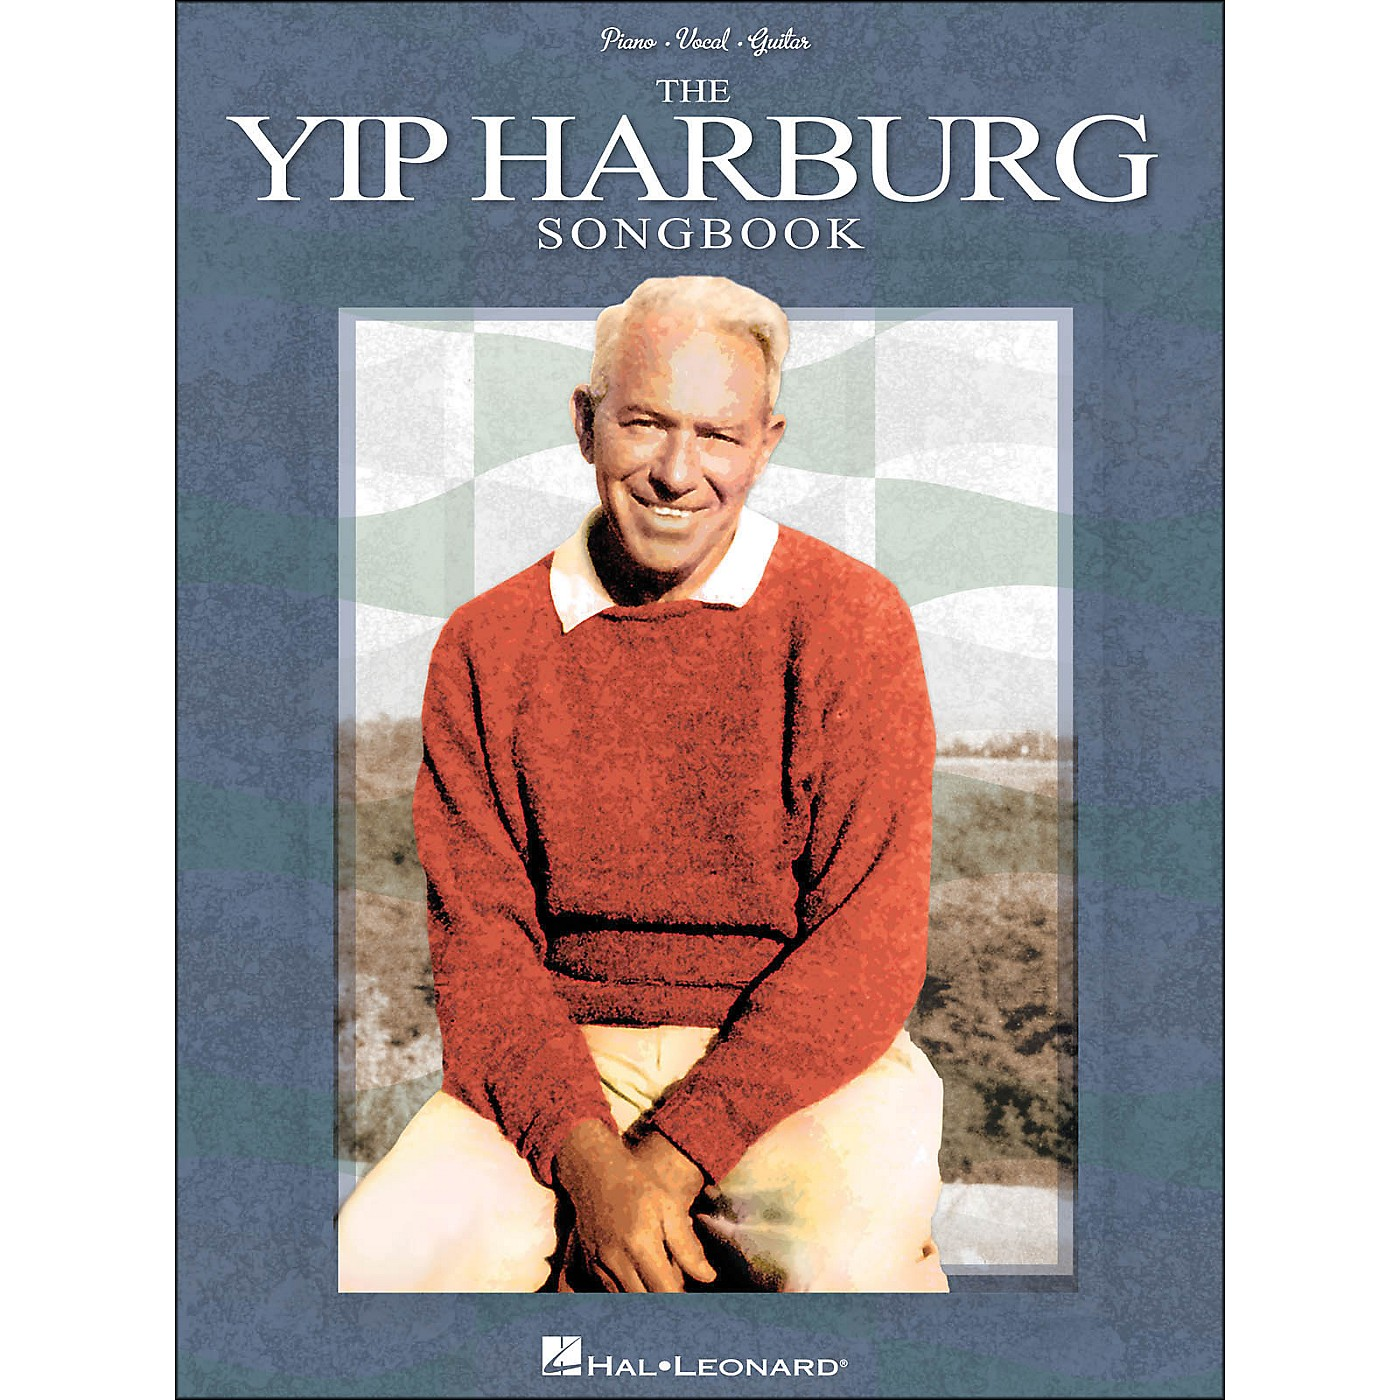 Hal Leonard The Yip Harburg Songbook 2nd Edition arranged for piano, vocal, and guitar (P/V/G) thumbnail